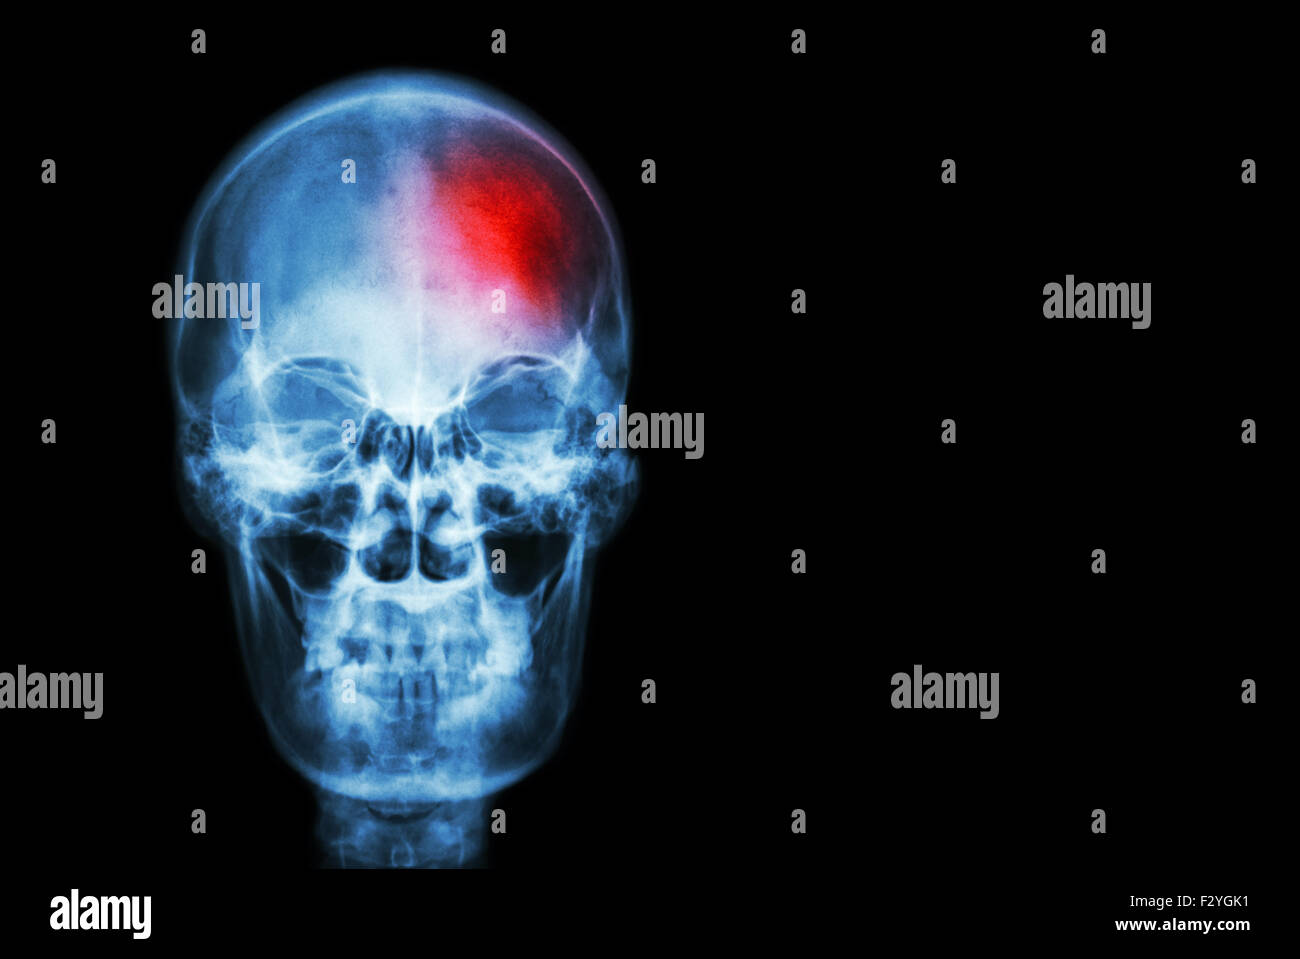 stroke cerebrovascular accident film x ray skull of human with red area medical science and healthcare concept and bac